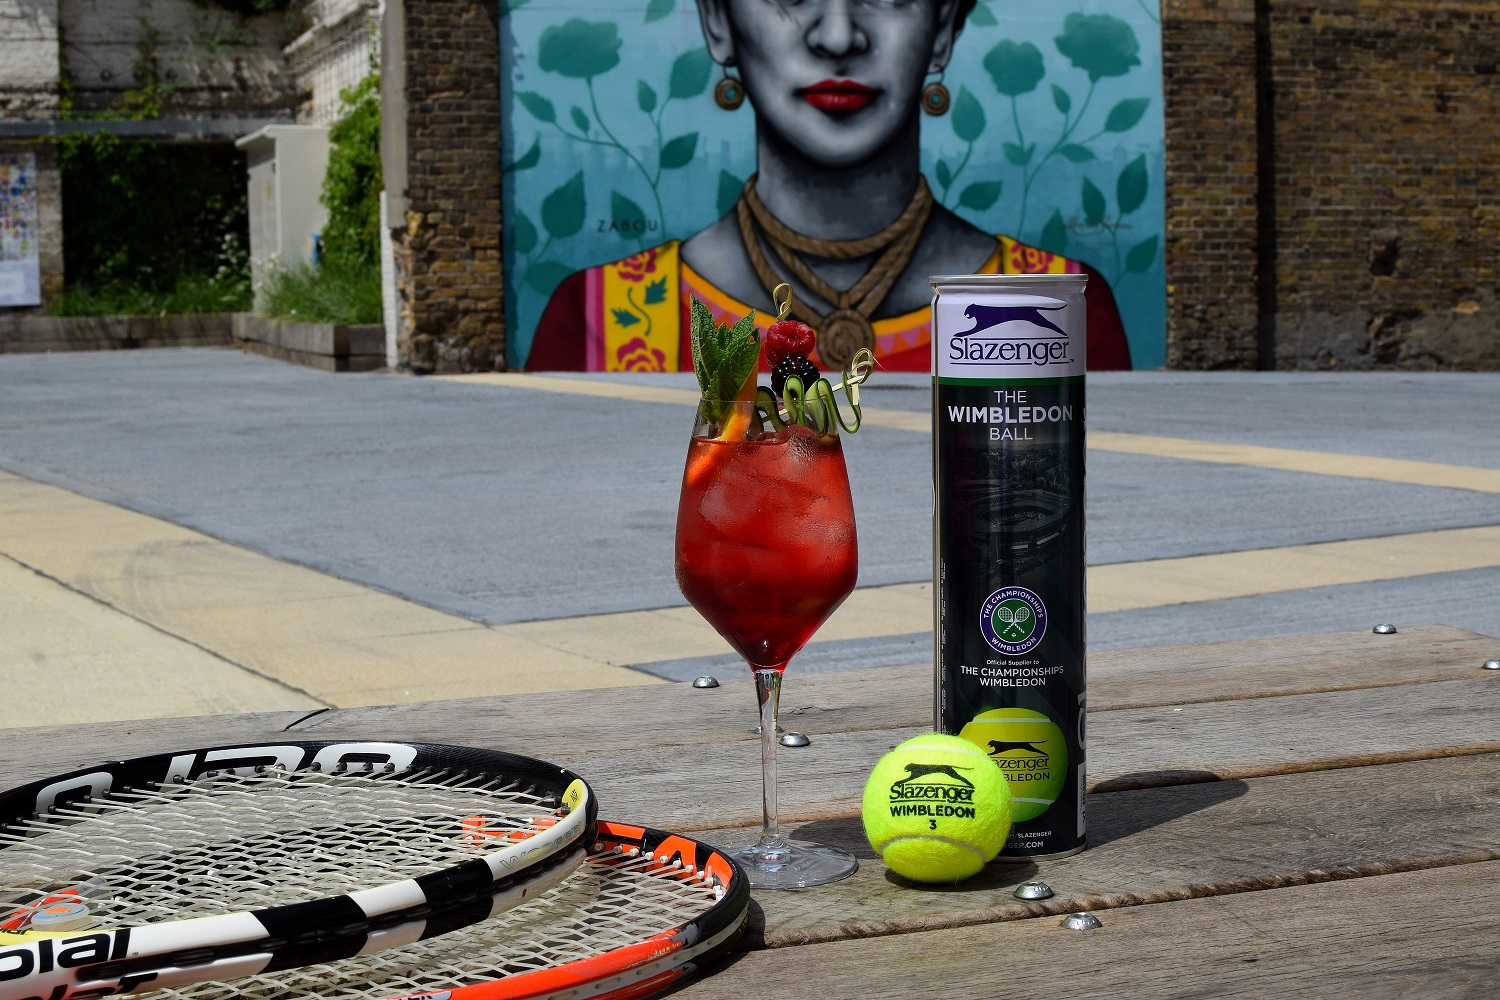 Wimbledon Cocktail and Tennis Rackets and Balls 2